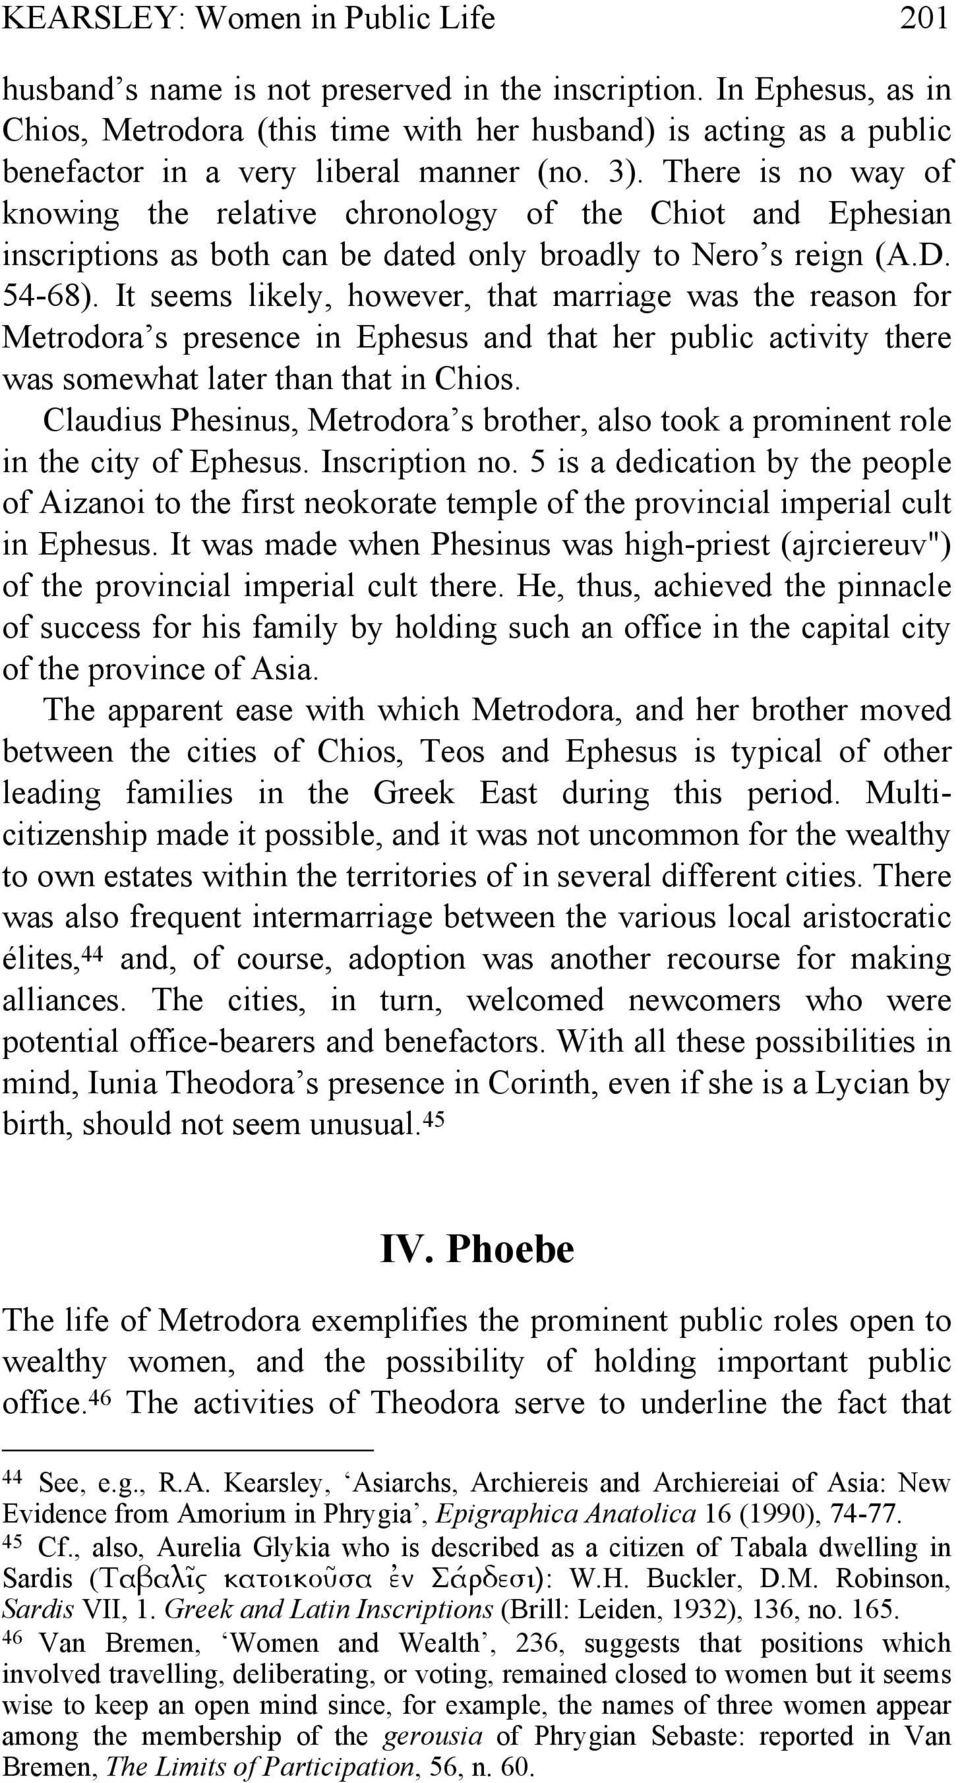 There is no way of knowing the relative chronology of the Chiot and Ephesian inscriptions as both can be dated only broadly to Nero s reign (A.D. 54-68).